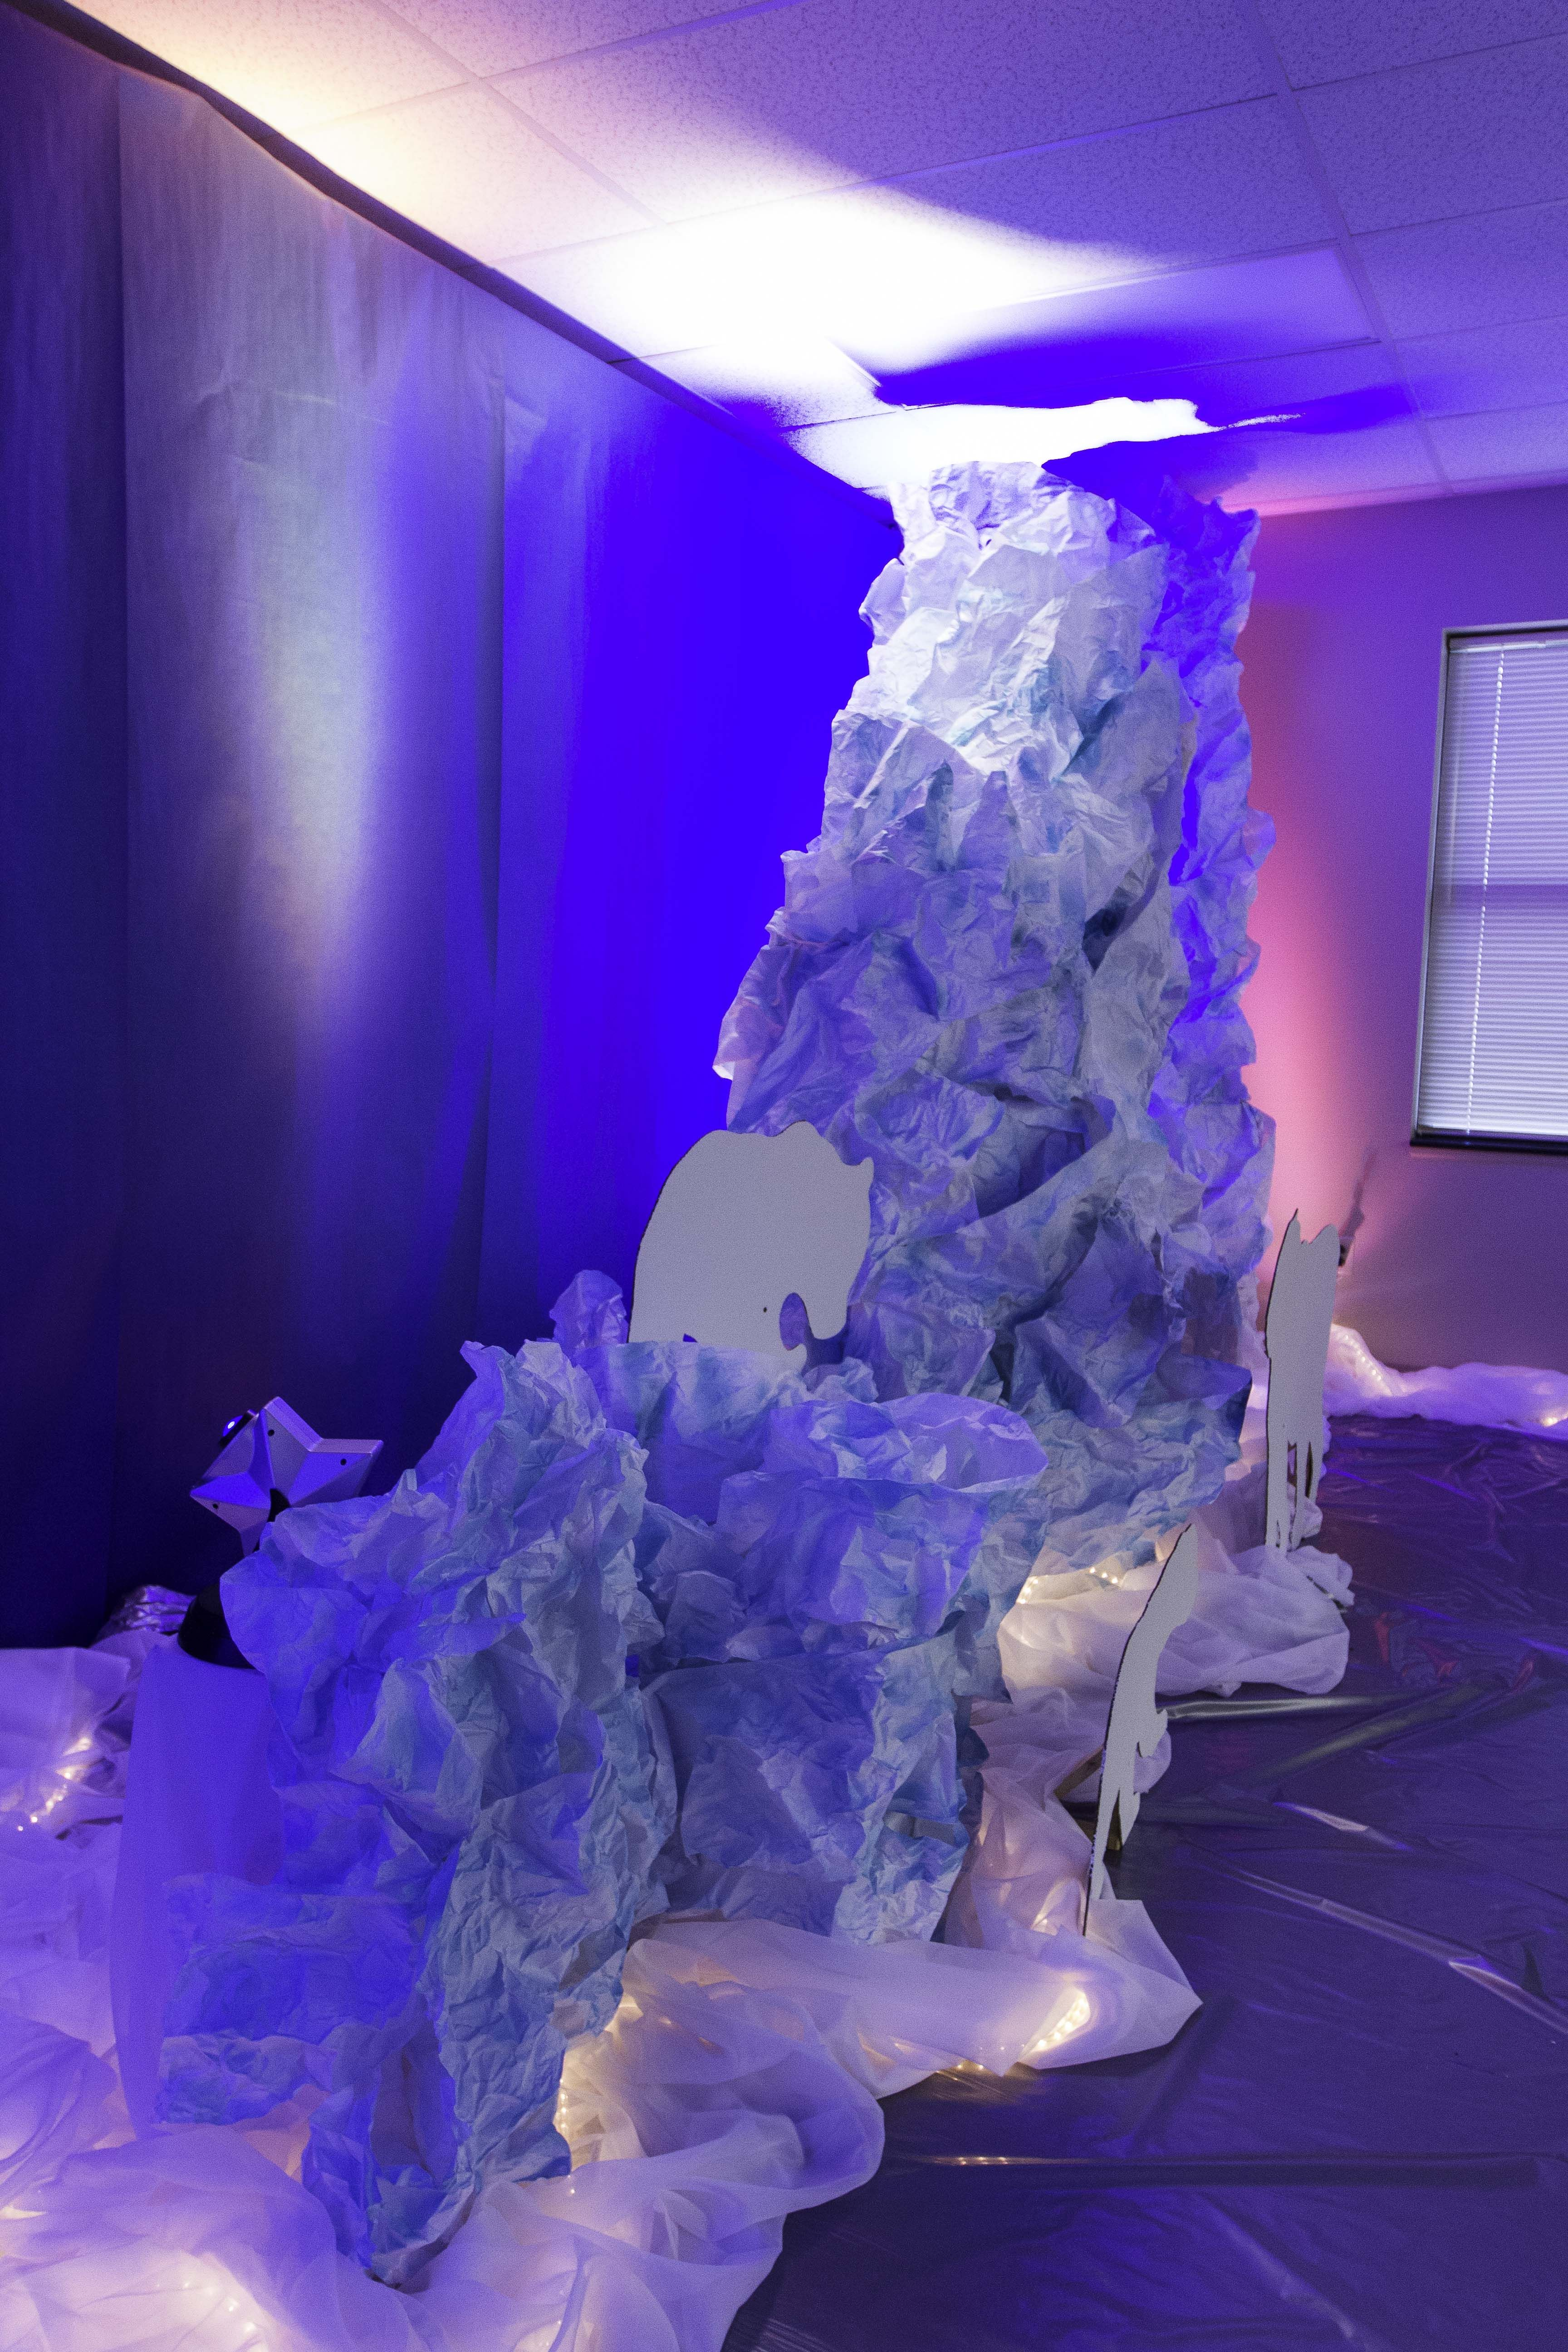 How To Make Ice Bergs Painting